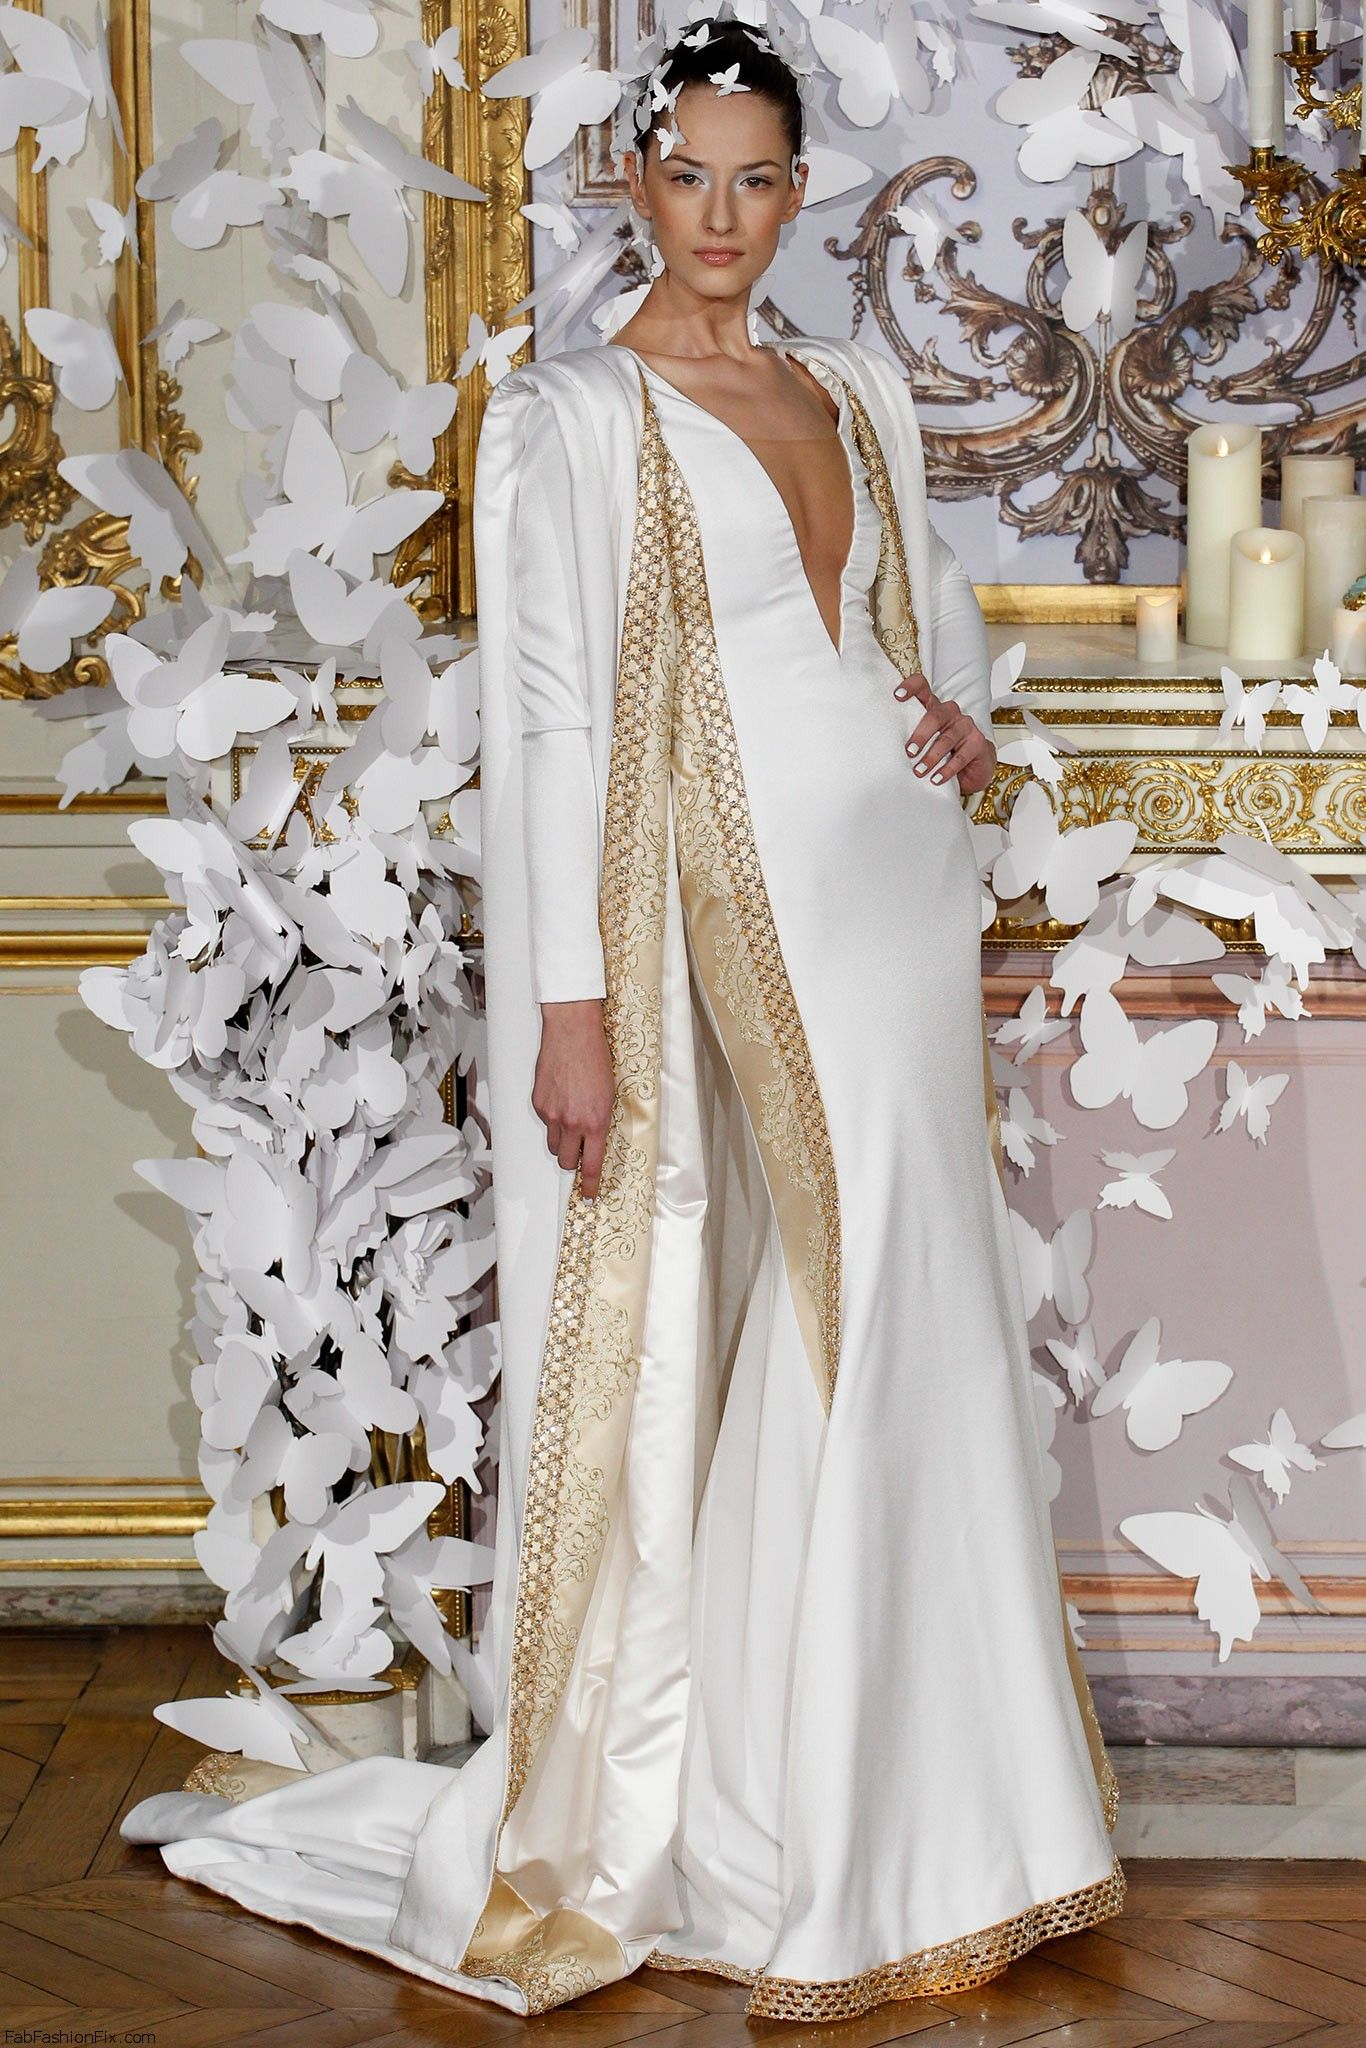 Alexis mabille haute couture spring summer 2014 collection for Haute design